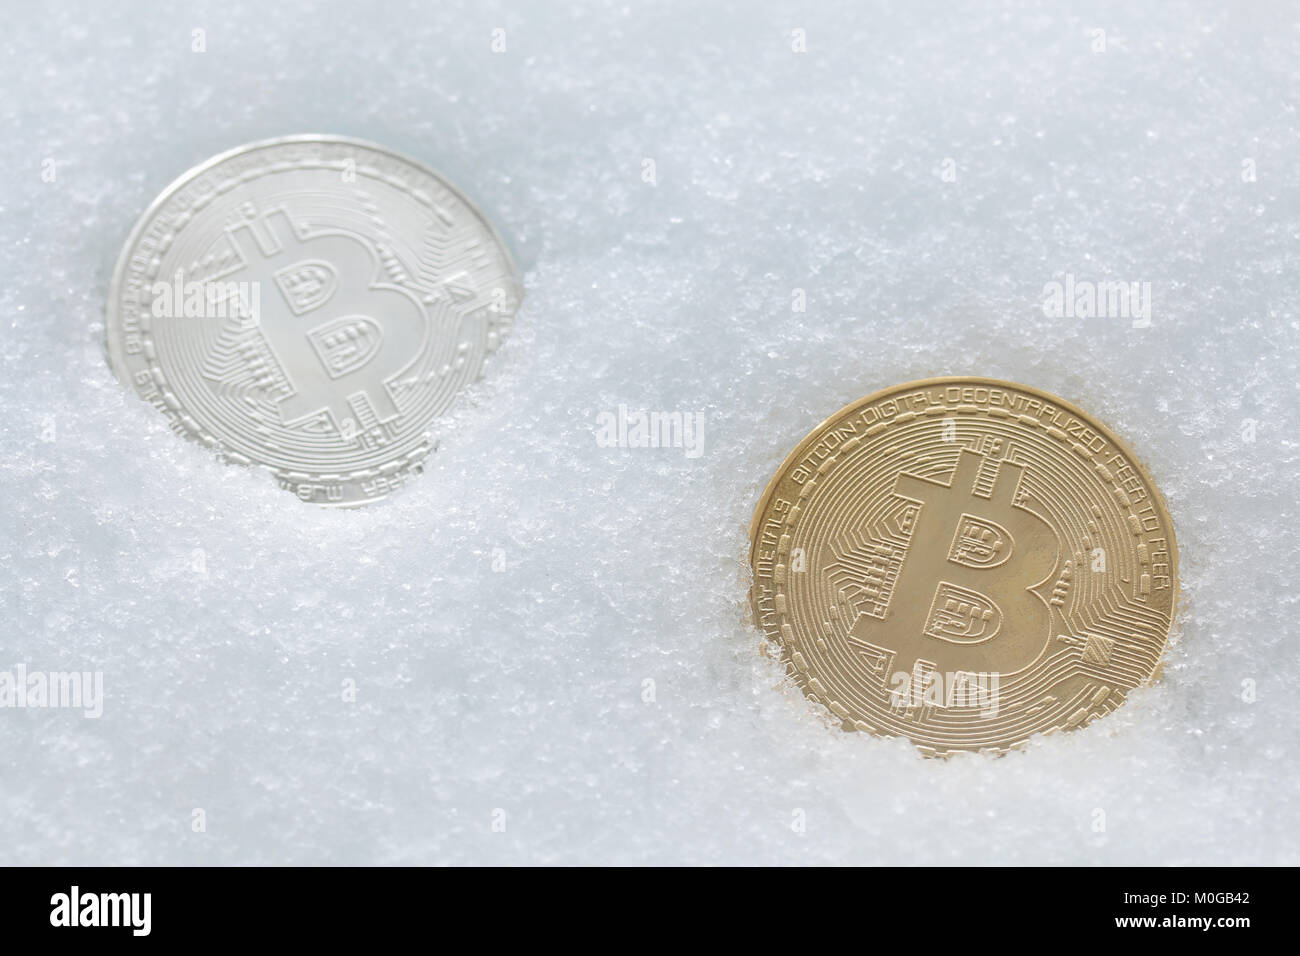 gold bitcoin on cold winter snow background - Stock Image